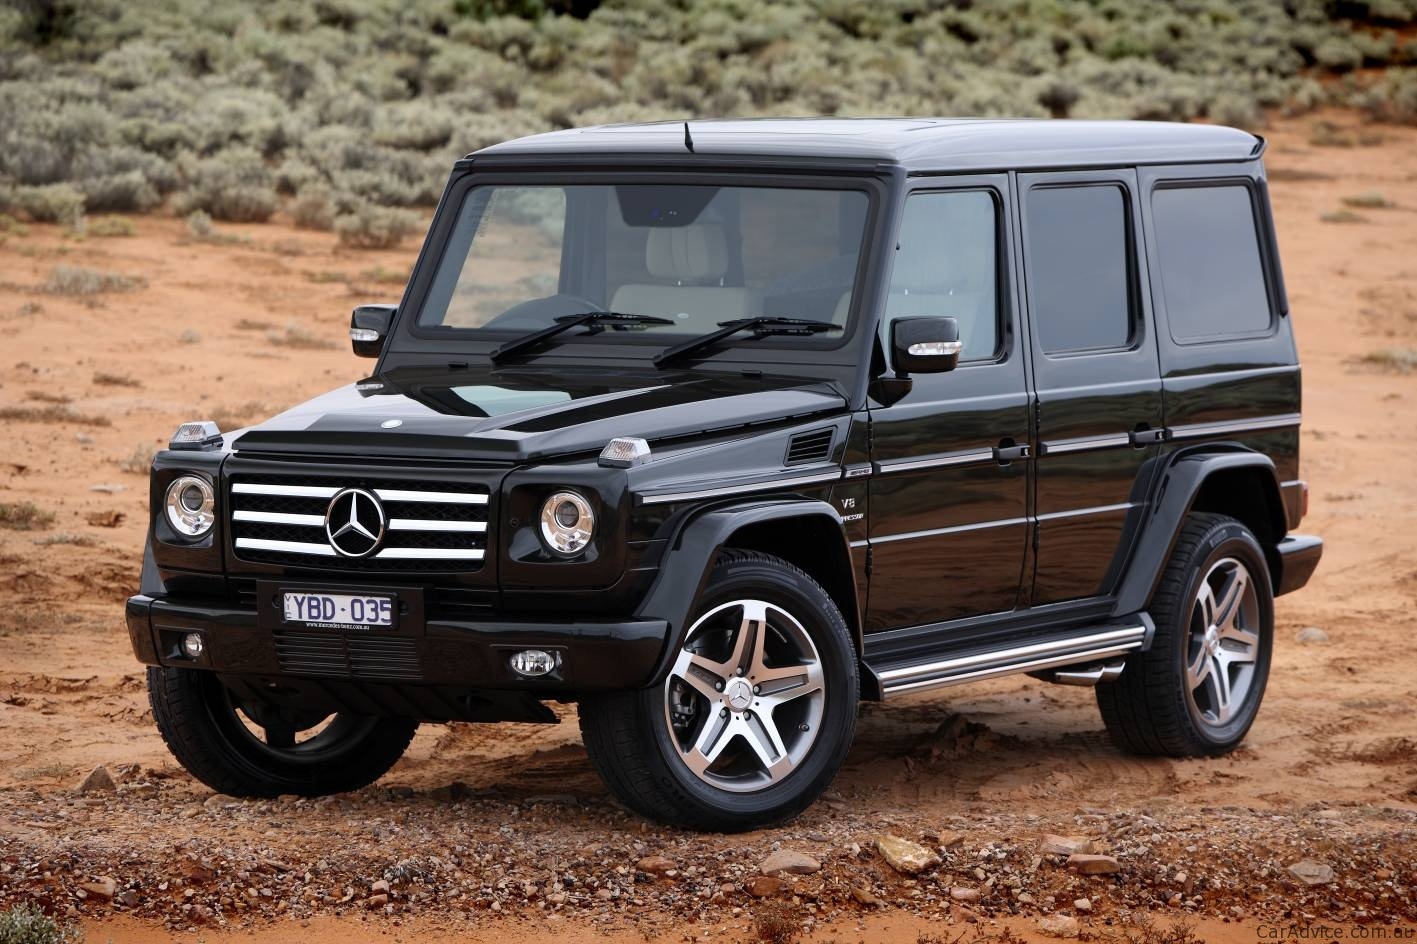 2011 mercedes benz g 350 bluetec and g 55 amg in australia photos 1 of 17. Black Bedroom Furniture Sets. Home Design Ideas